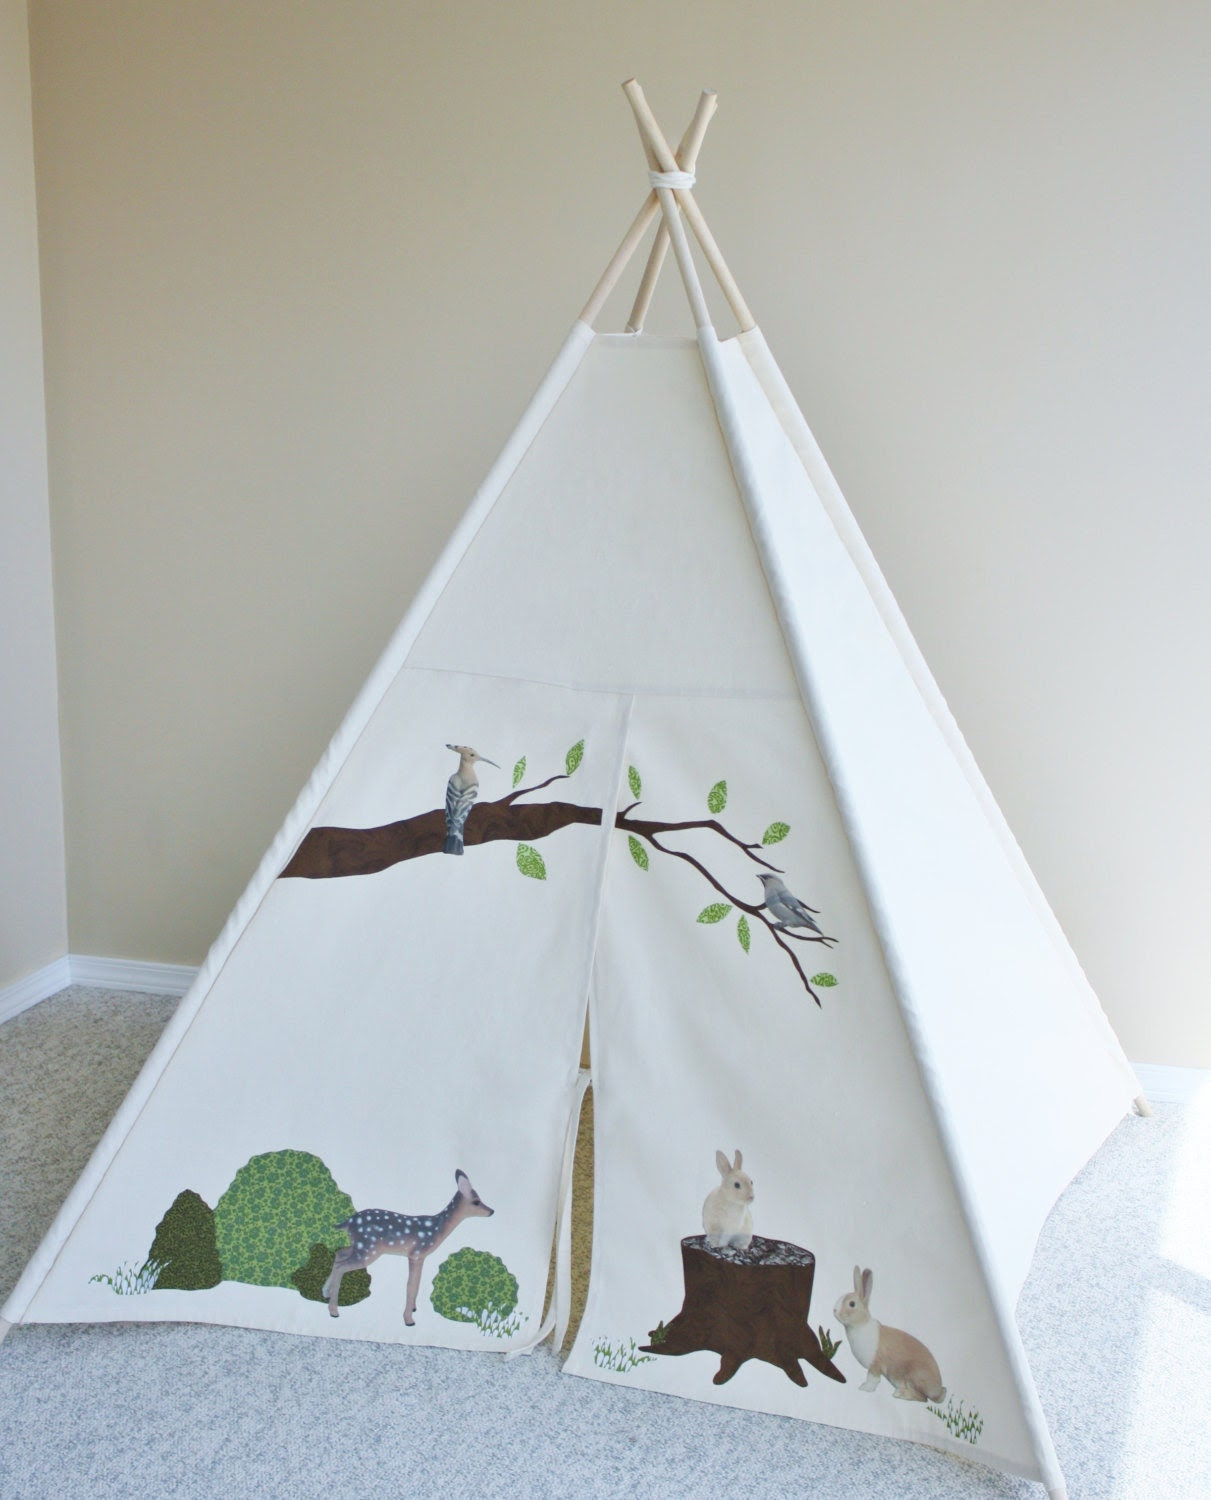 Forest Custom Canvas Play Tent Teepee Prop - AshleyGabby